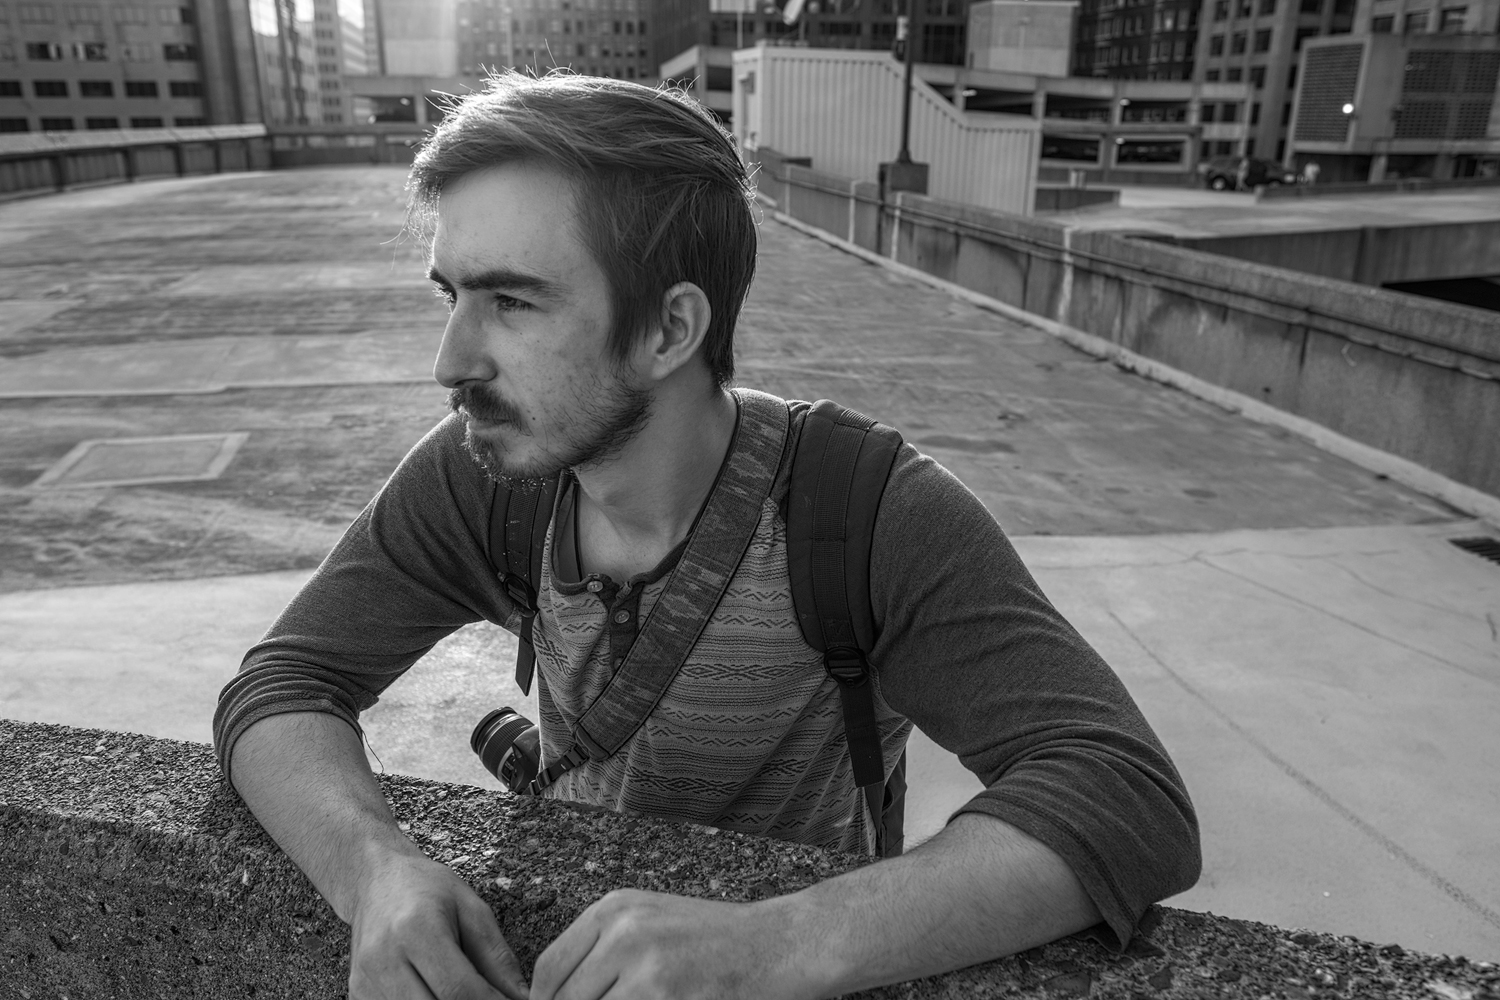 Nathan • Downtown St. Louis, Missouri. Fuji X-Pro 2 and a Fujinon XF16mm f1.4 R. Image exposed at Iso 400 at f4 for 1/250 of a second.